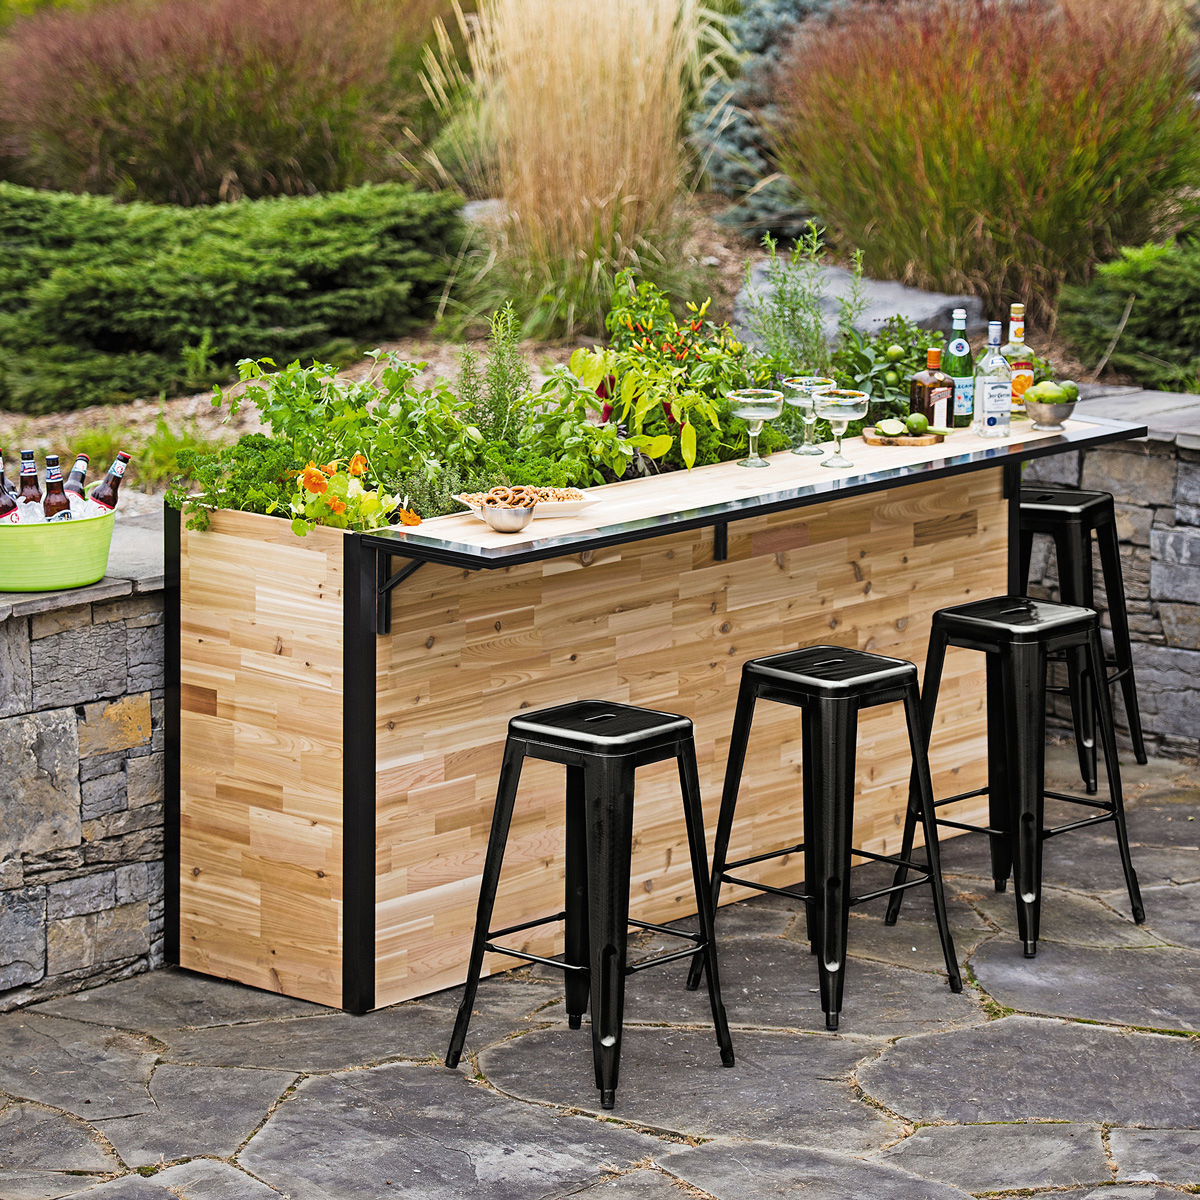 Plant A Bar Wooden Outdoor And Planter The Green Head